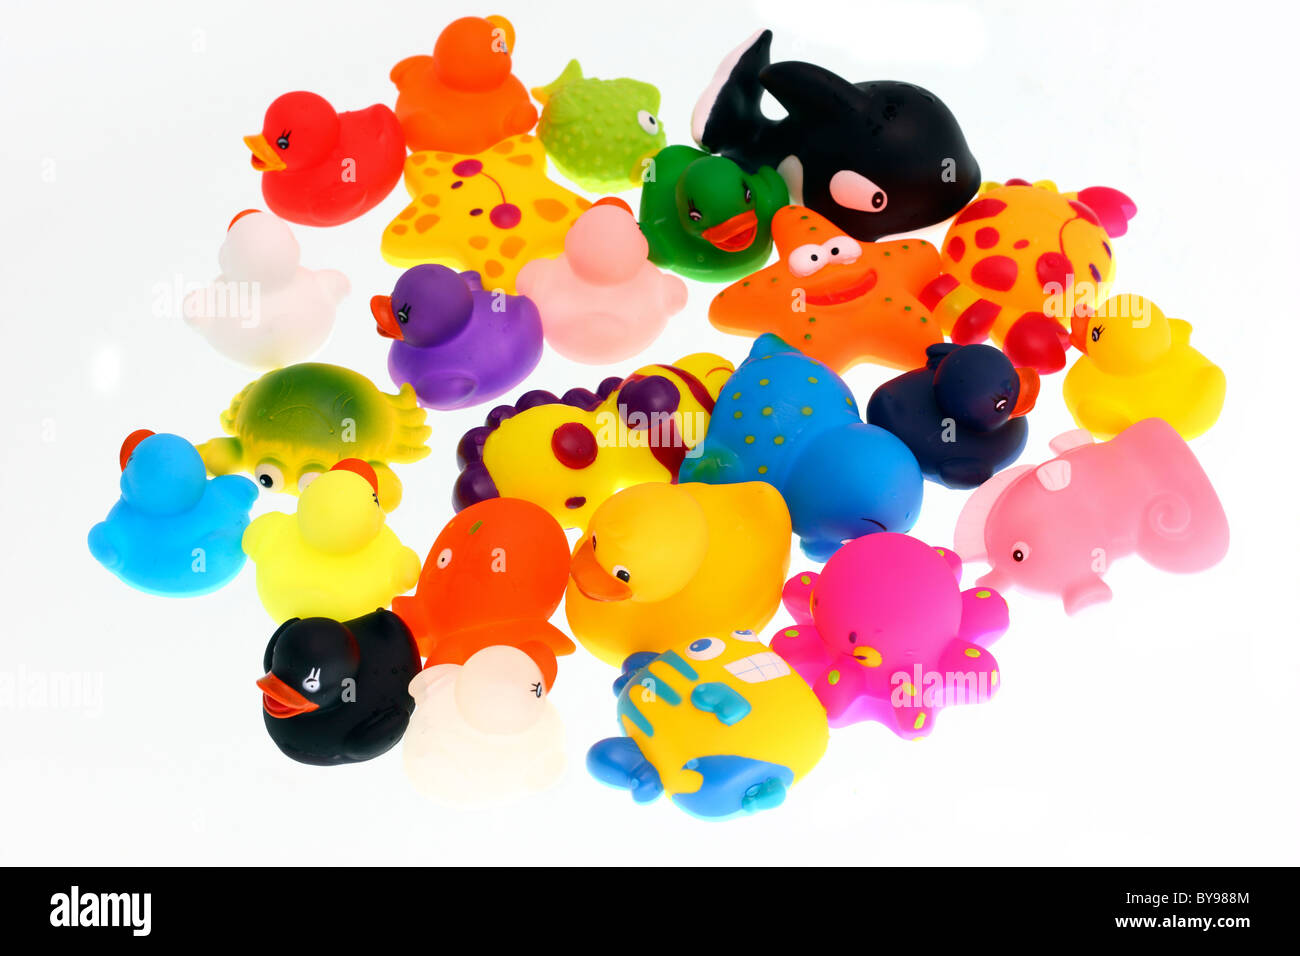 Bath toys, different colorful figures for kids to play with in a pool or bath tub. Wind-up figures, mechanic. Stock Photo